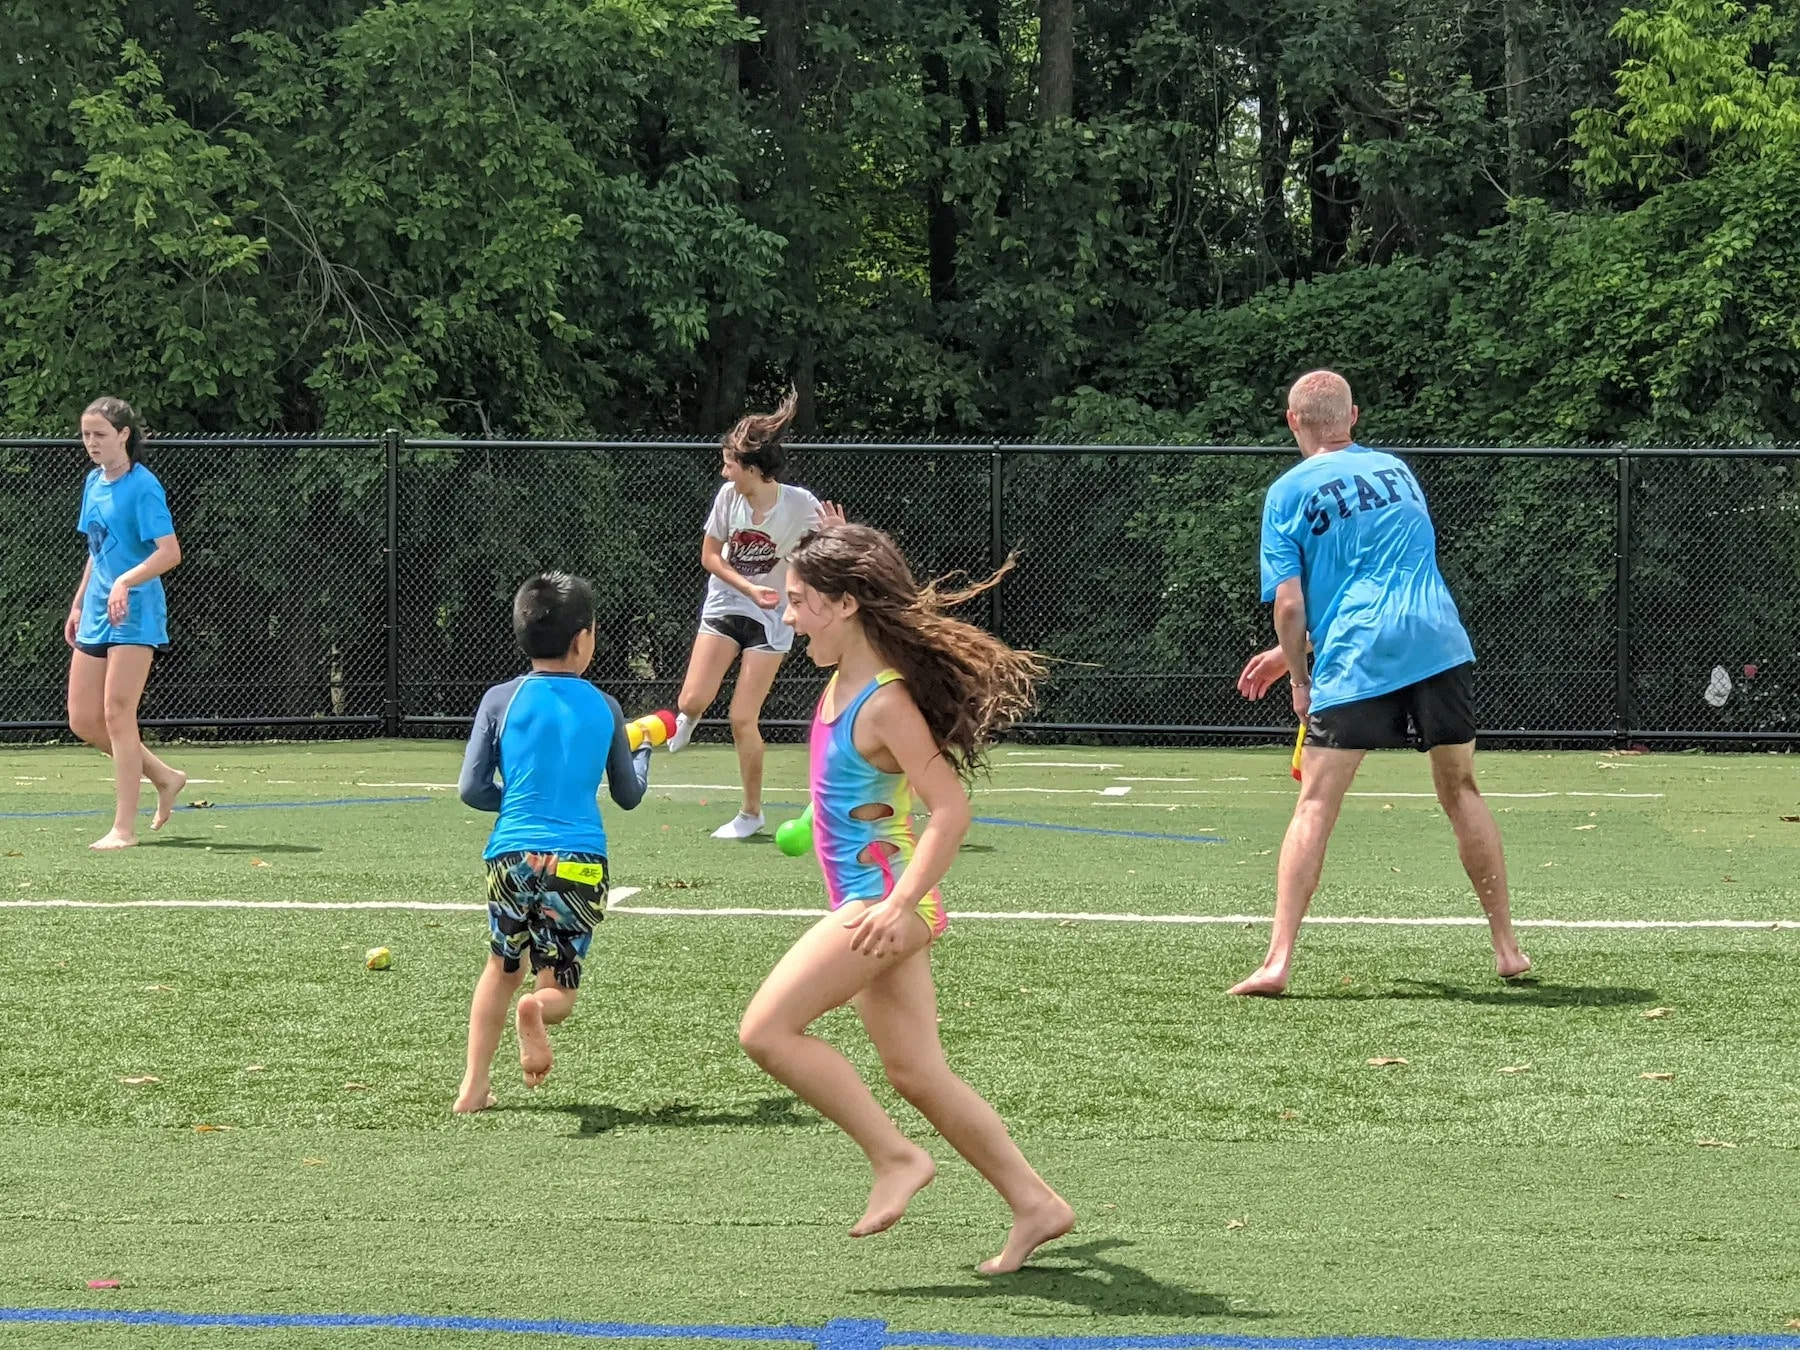 Florham Park Sports Dome Summer Day Camp